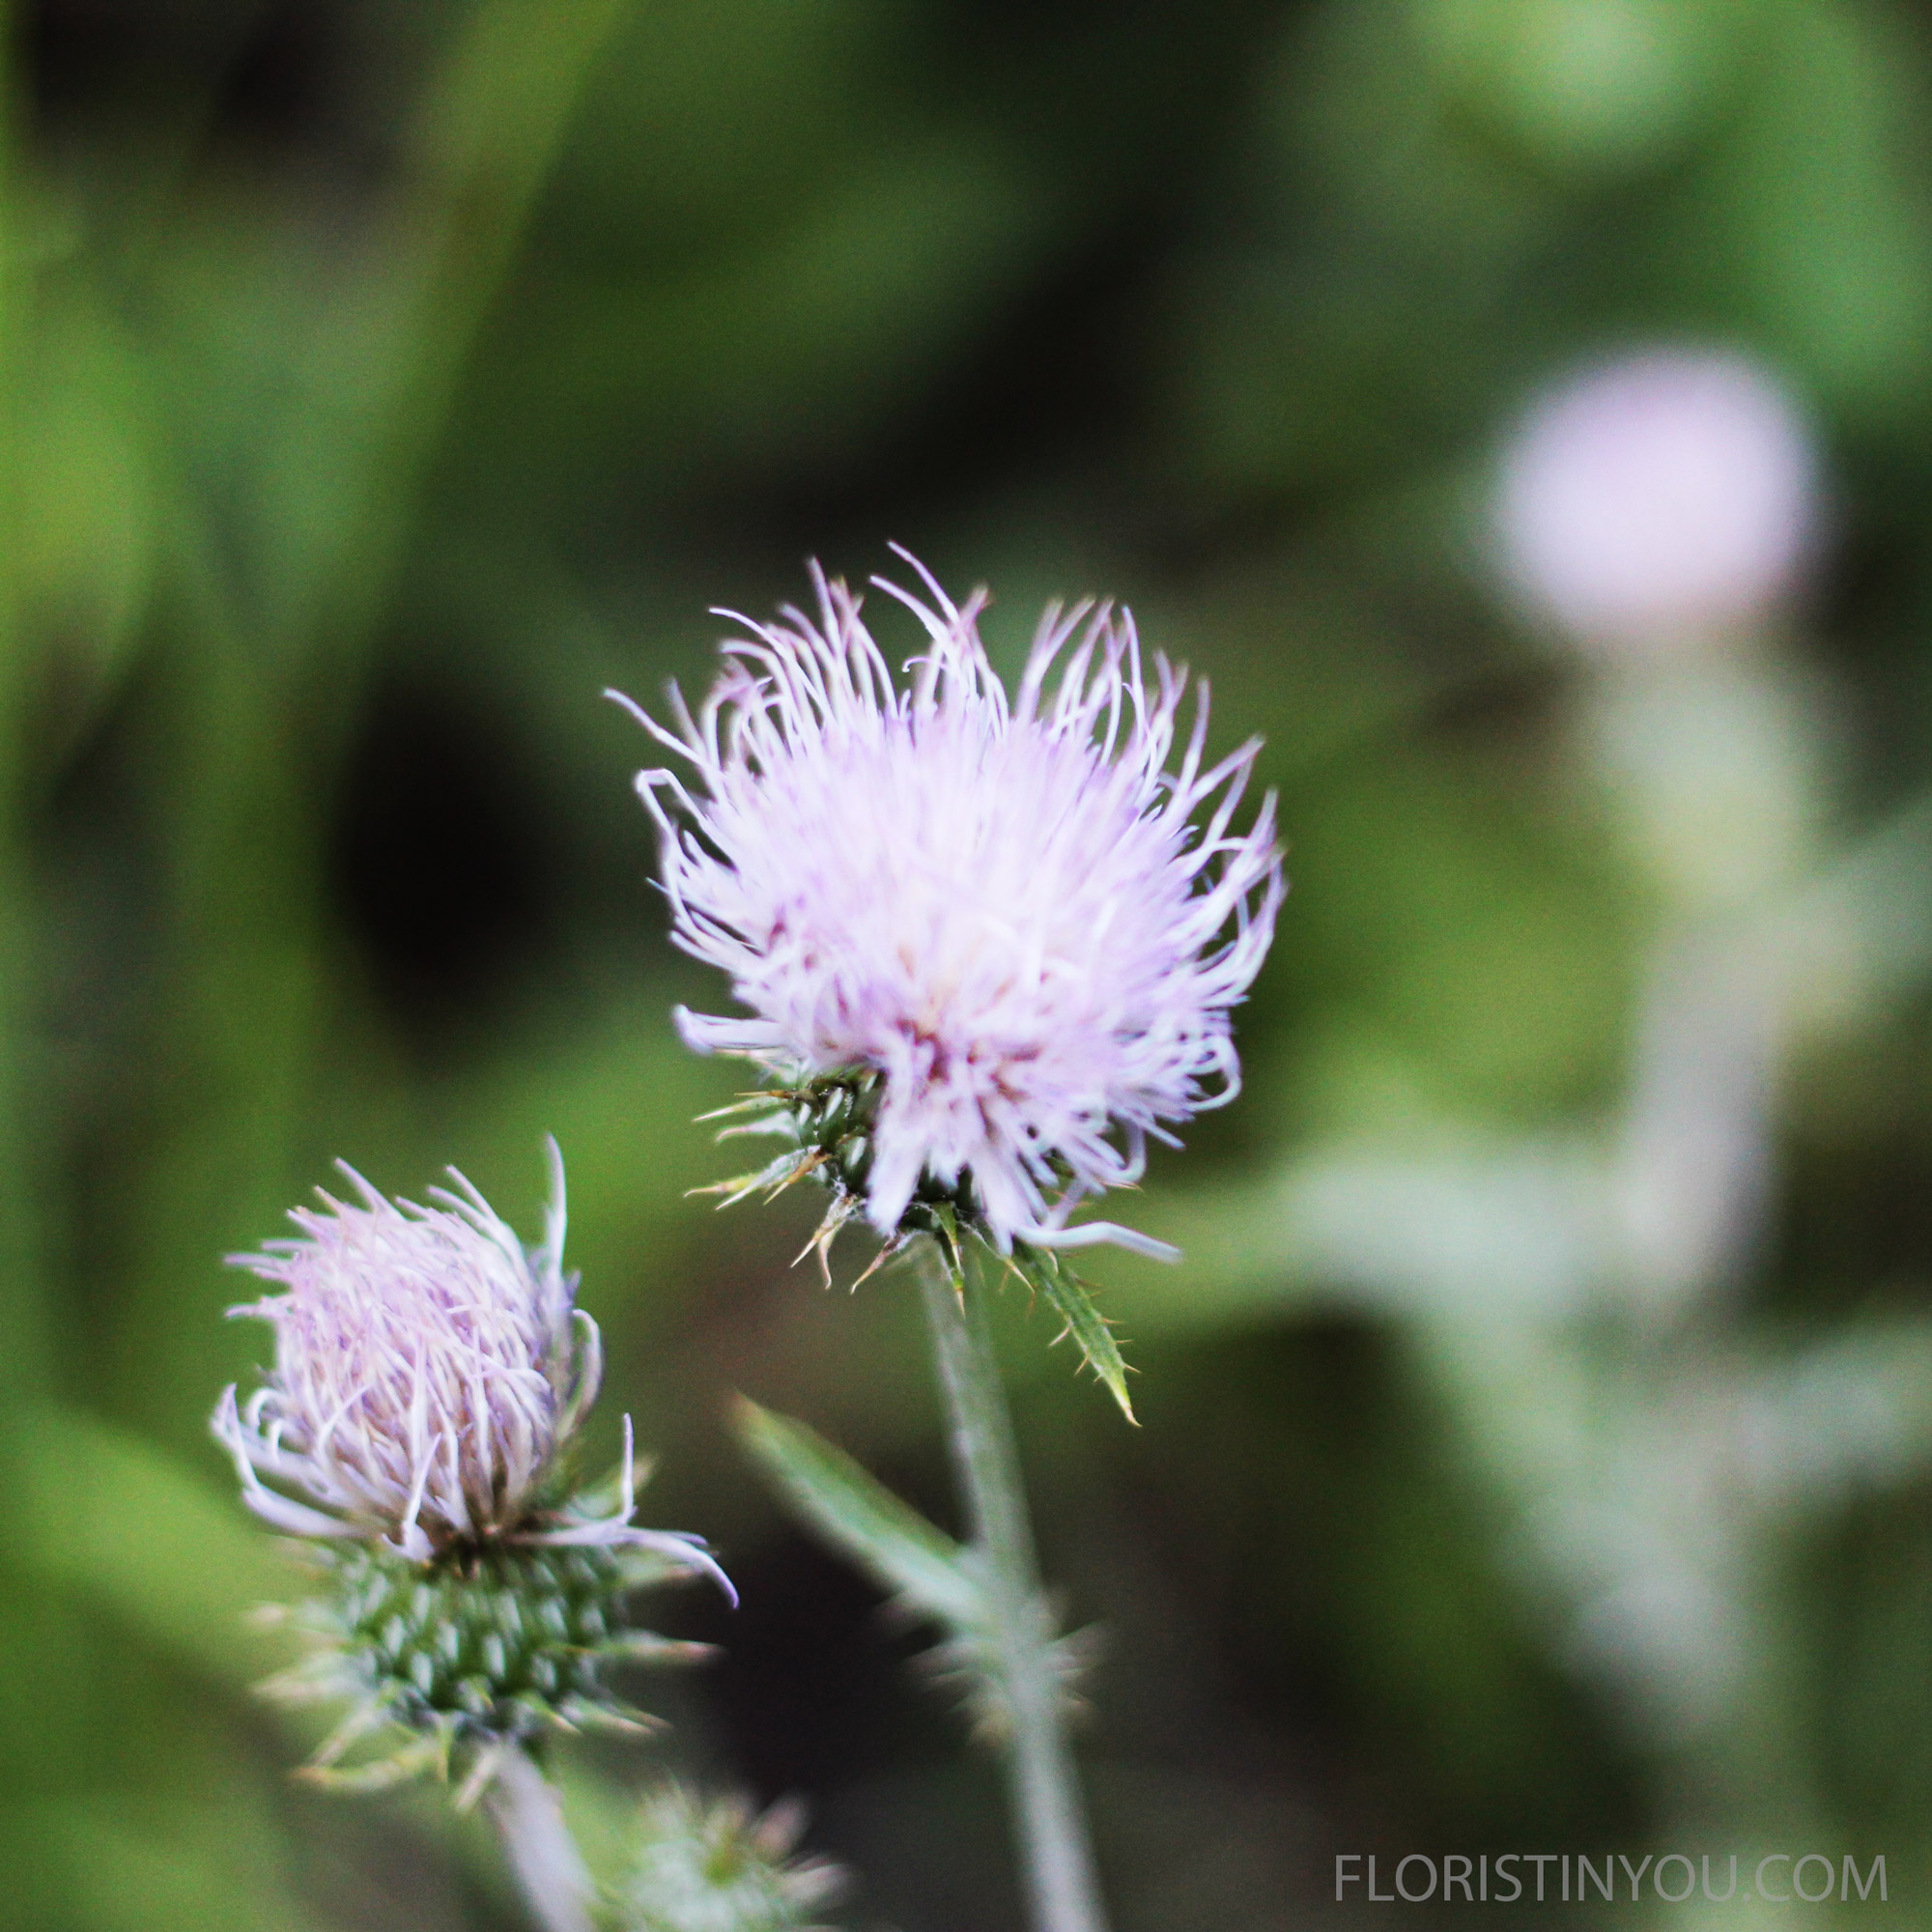 The  Utah Thistle  Cirsium neomexicanum  reminded me of Andy Warhol's hair.